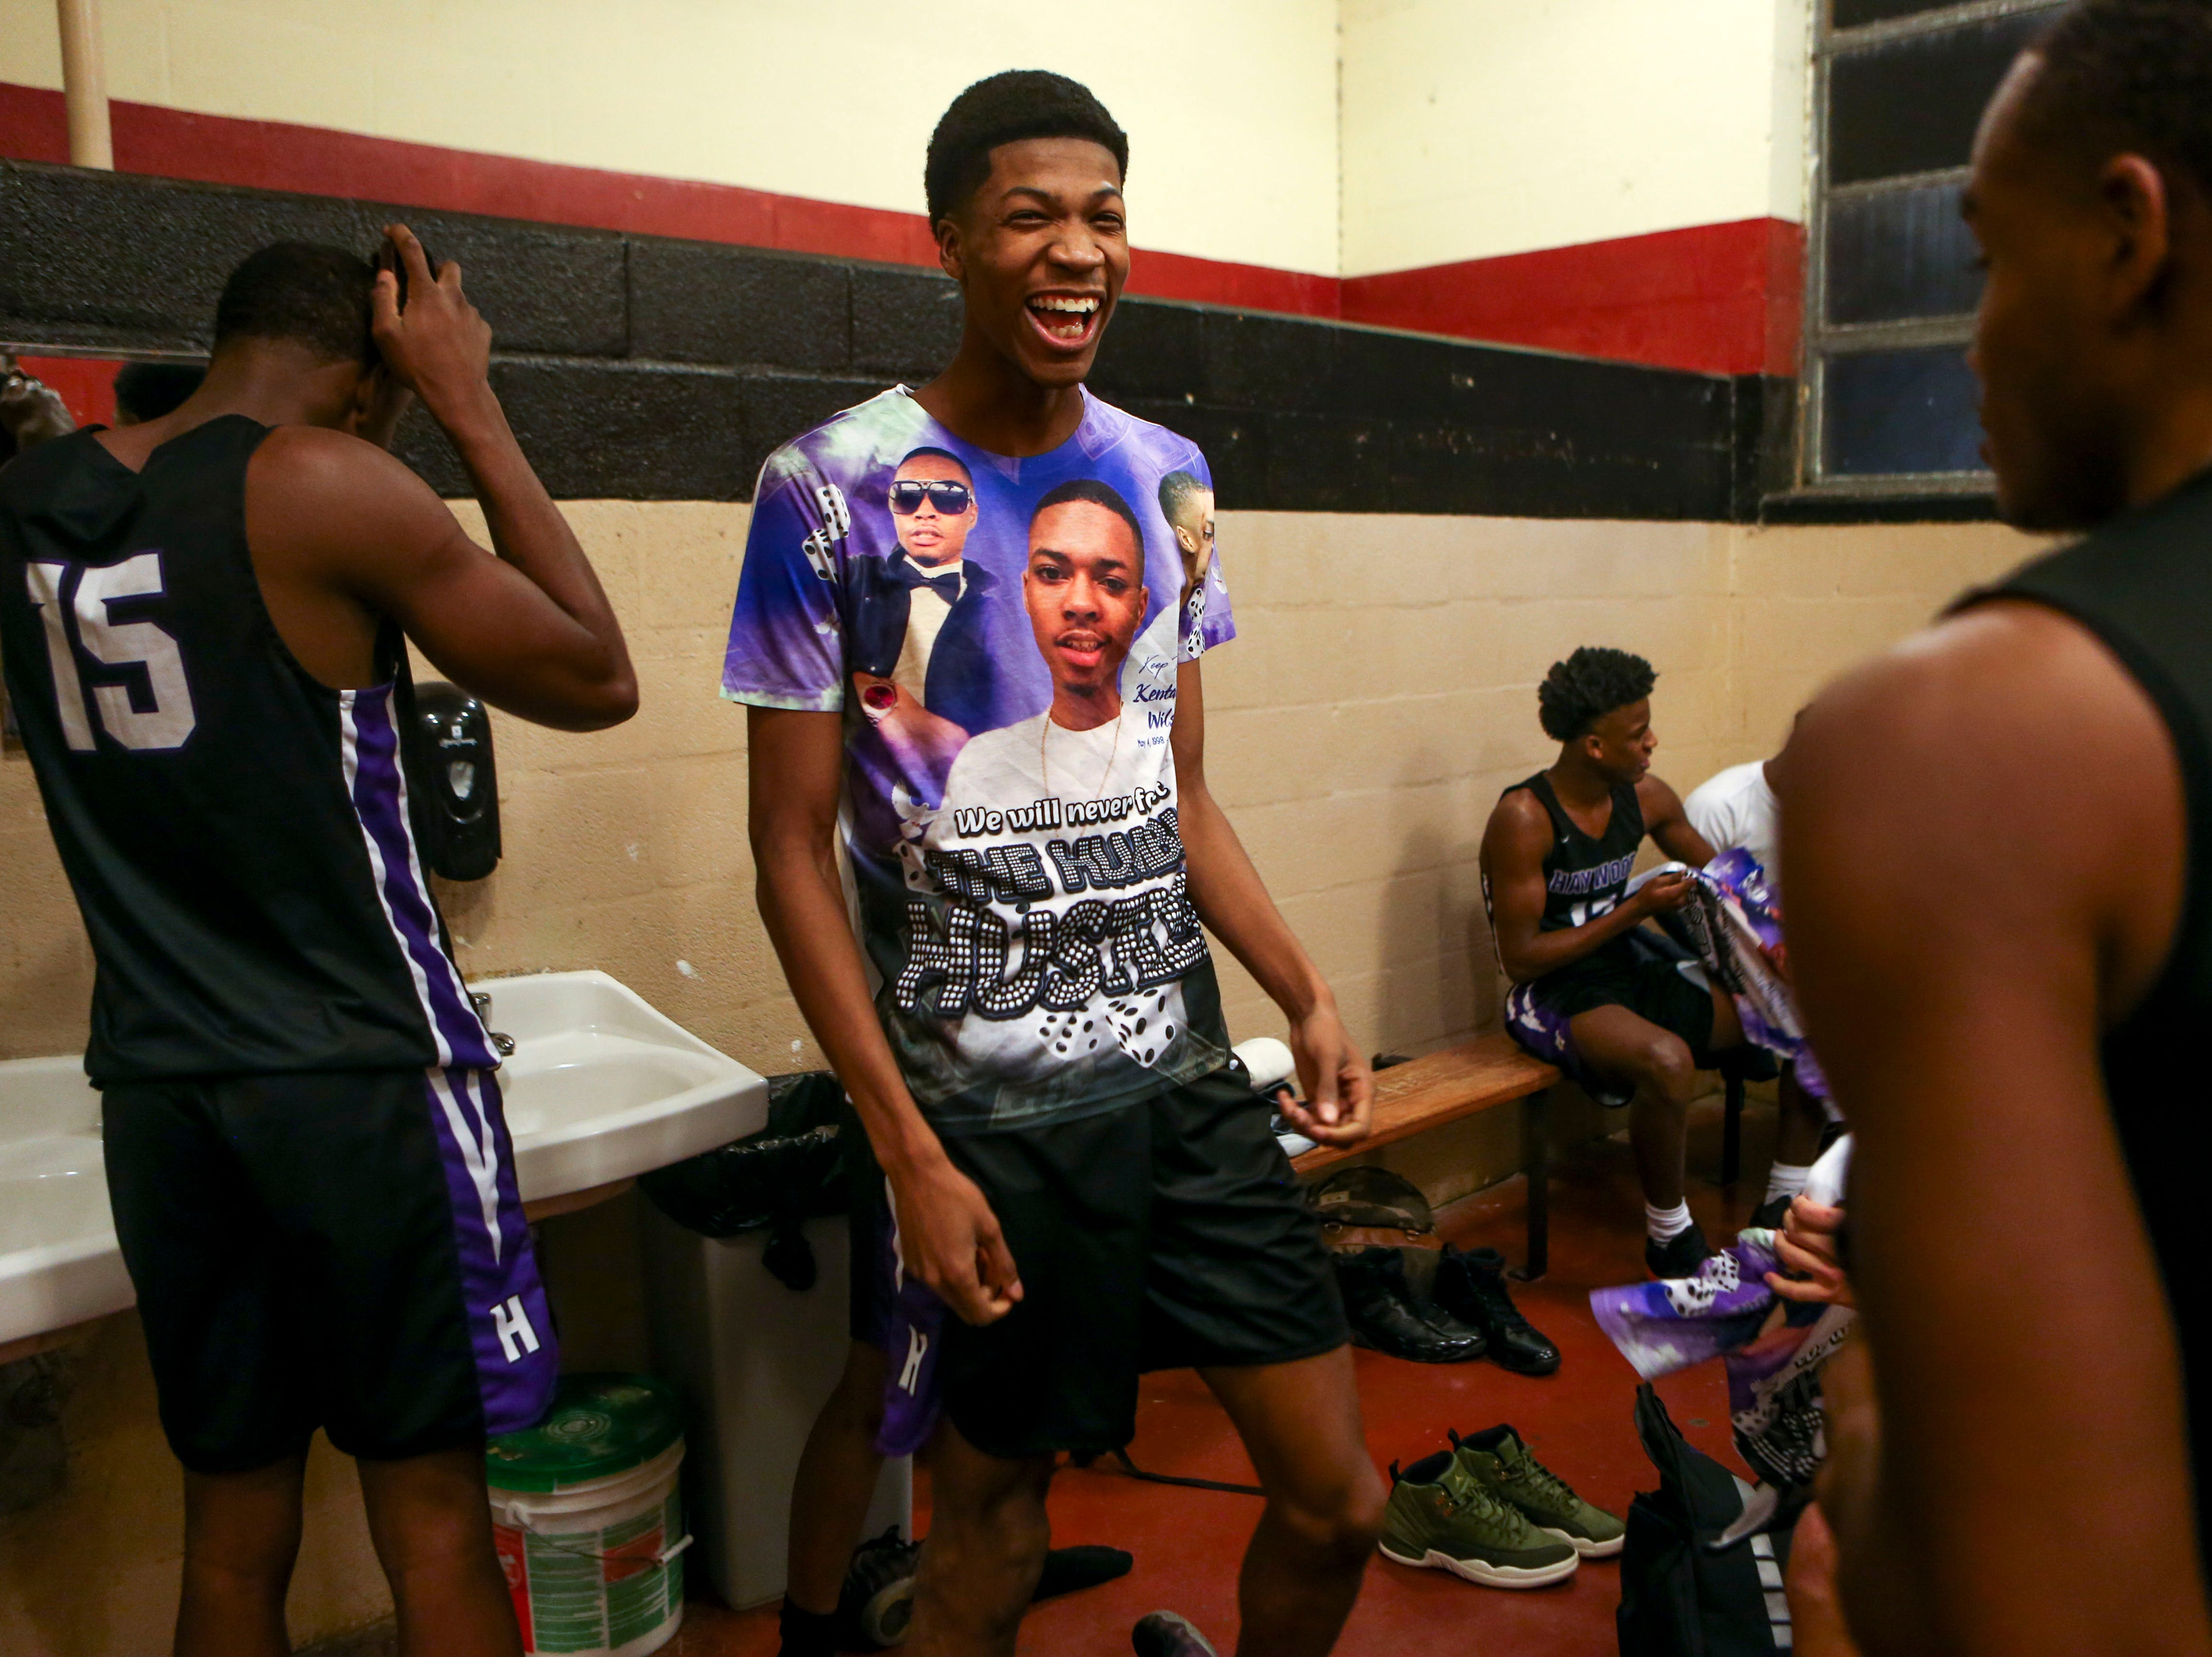 Haywood players laugh with one another in the locker room before a TSSAA basketball game between South Side and Haywood on the anniversary of Kentavious Wilson, a former Haywood player's, death at South Side High School in Jackson, Tenn., on Saturday, Jan. 5, 2019.